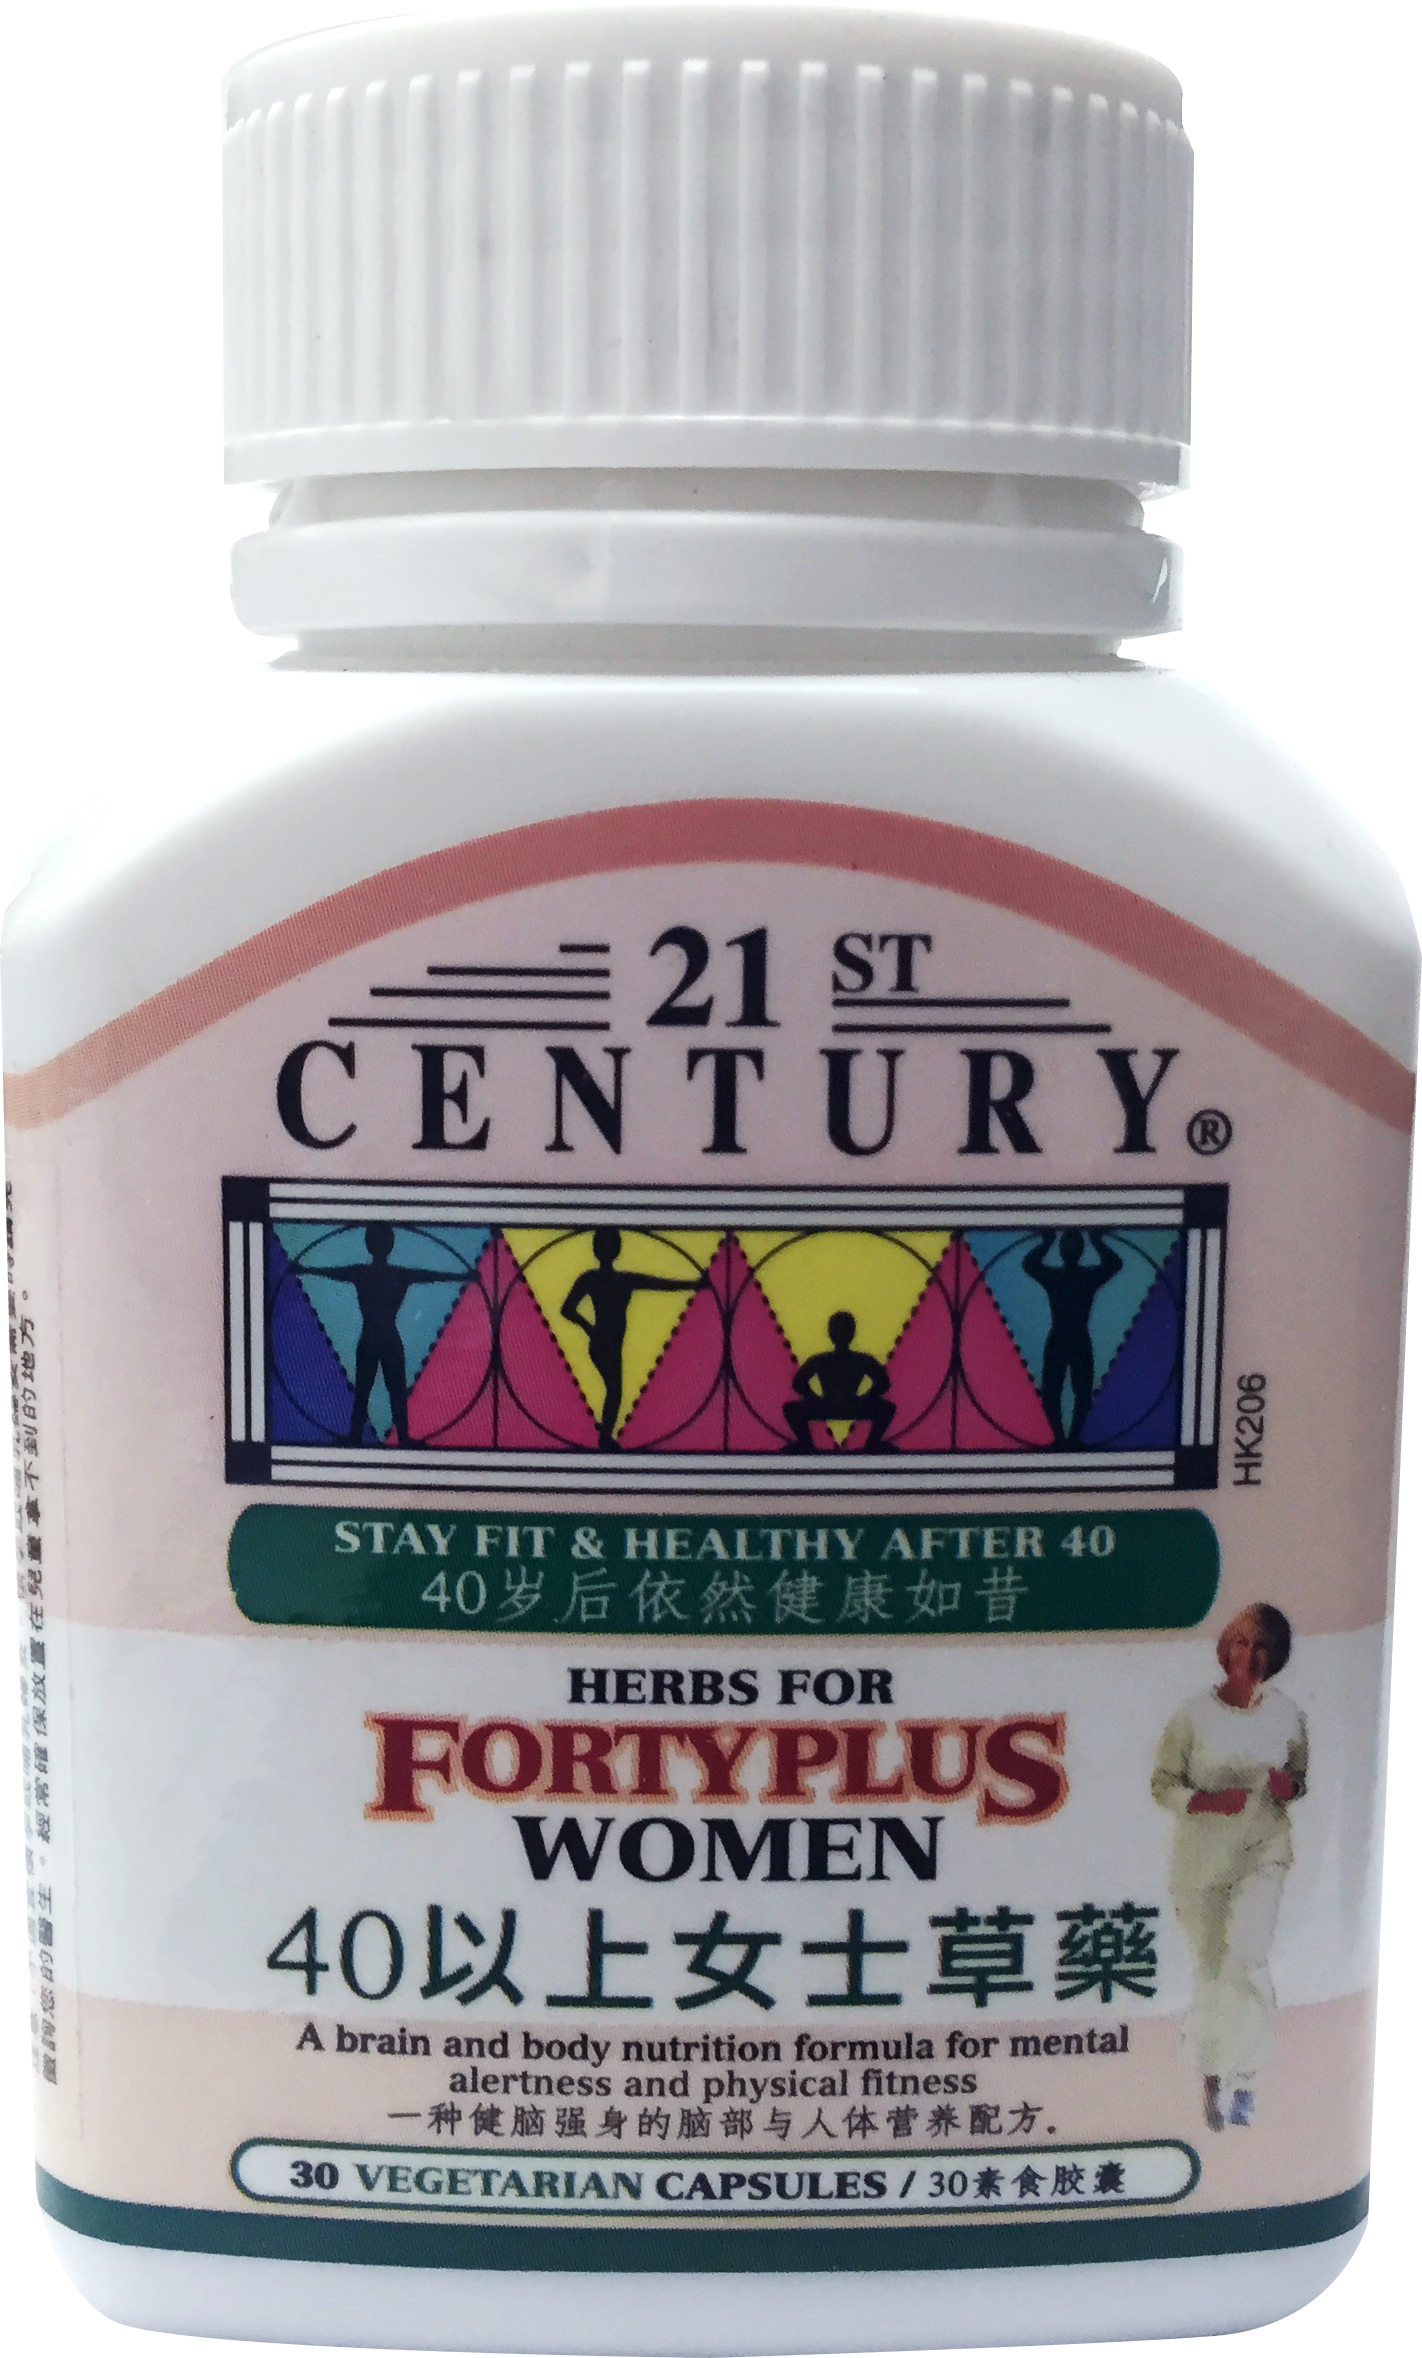 HERBS FOR FORTY PLUS WOMEN (30 Vegetarian Capsules)